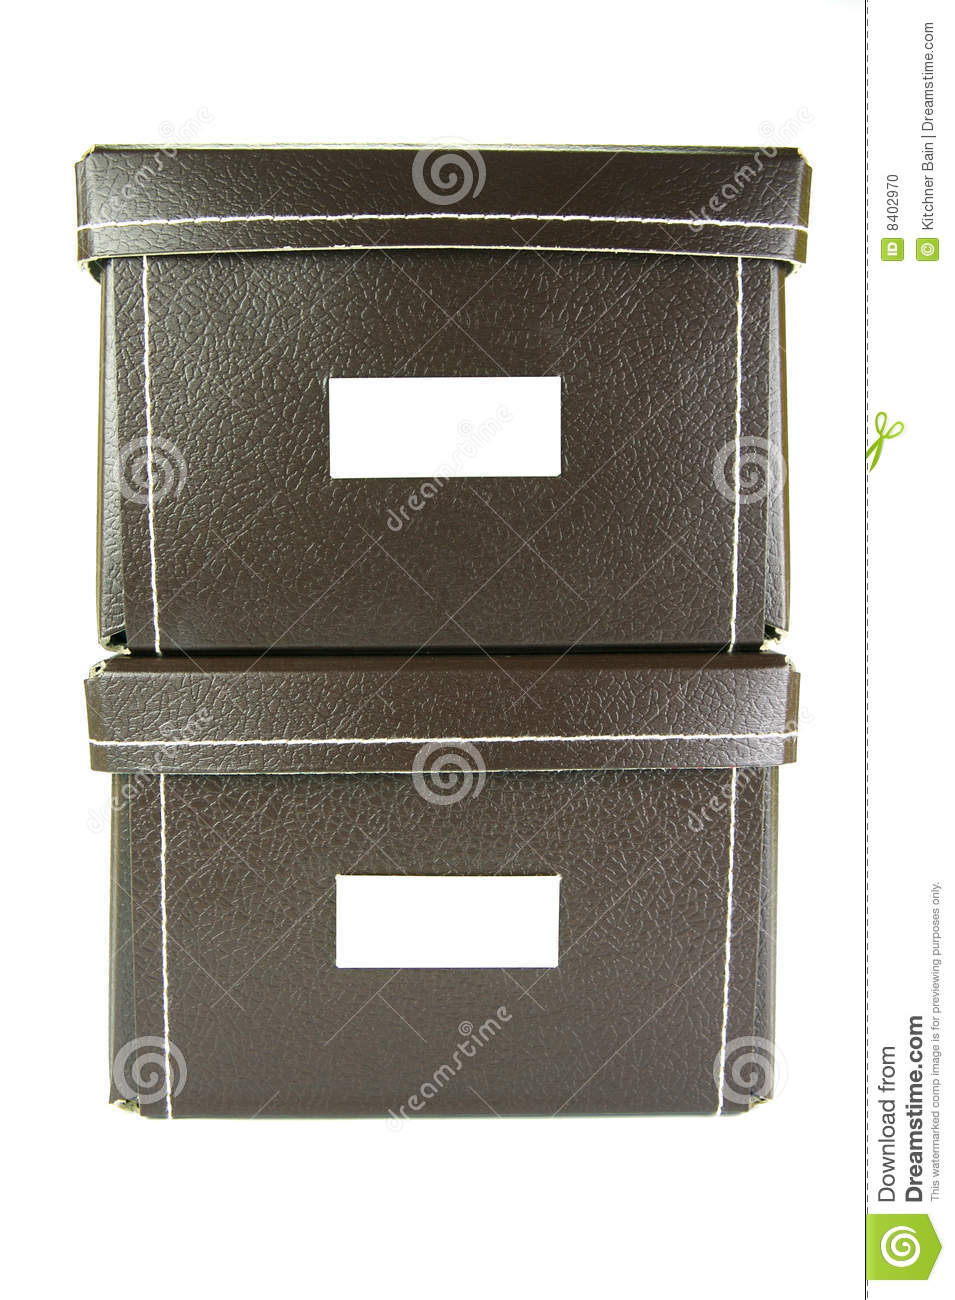 Stationary Boxes Stationery Boxes Stock Photo Image Of Brown Tidy Storage 8402970